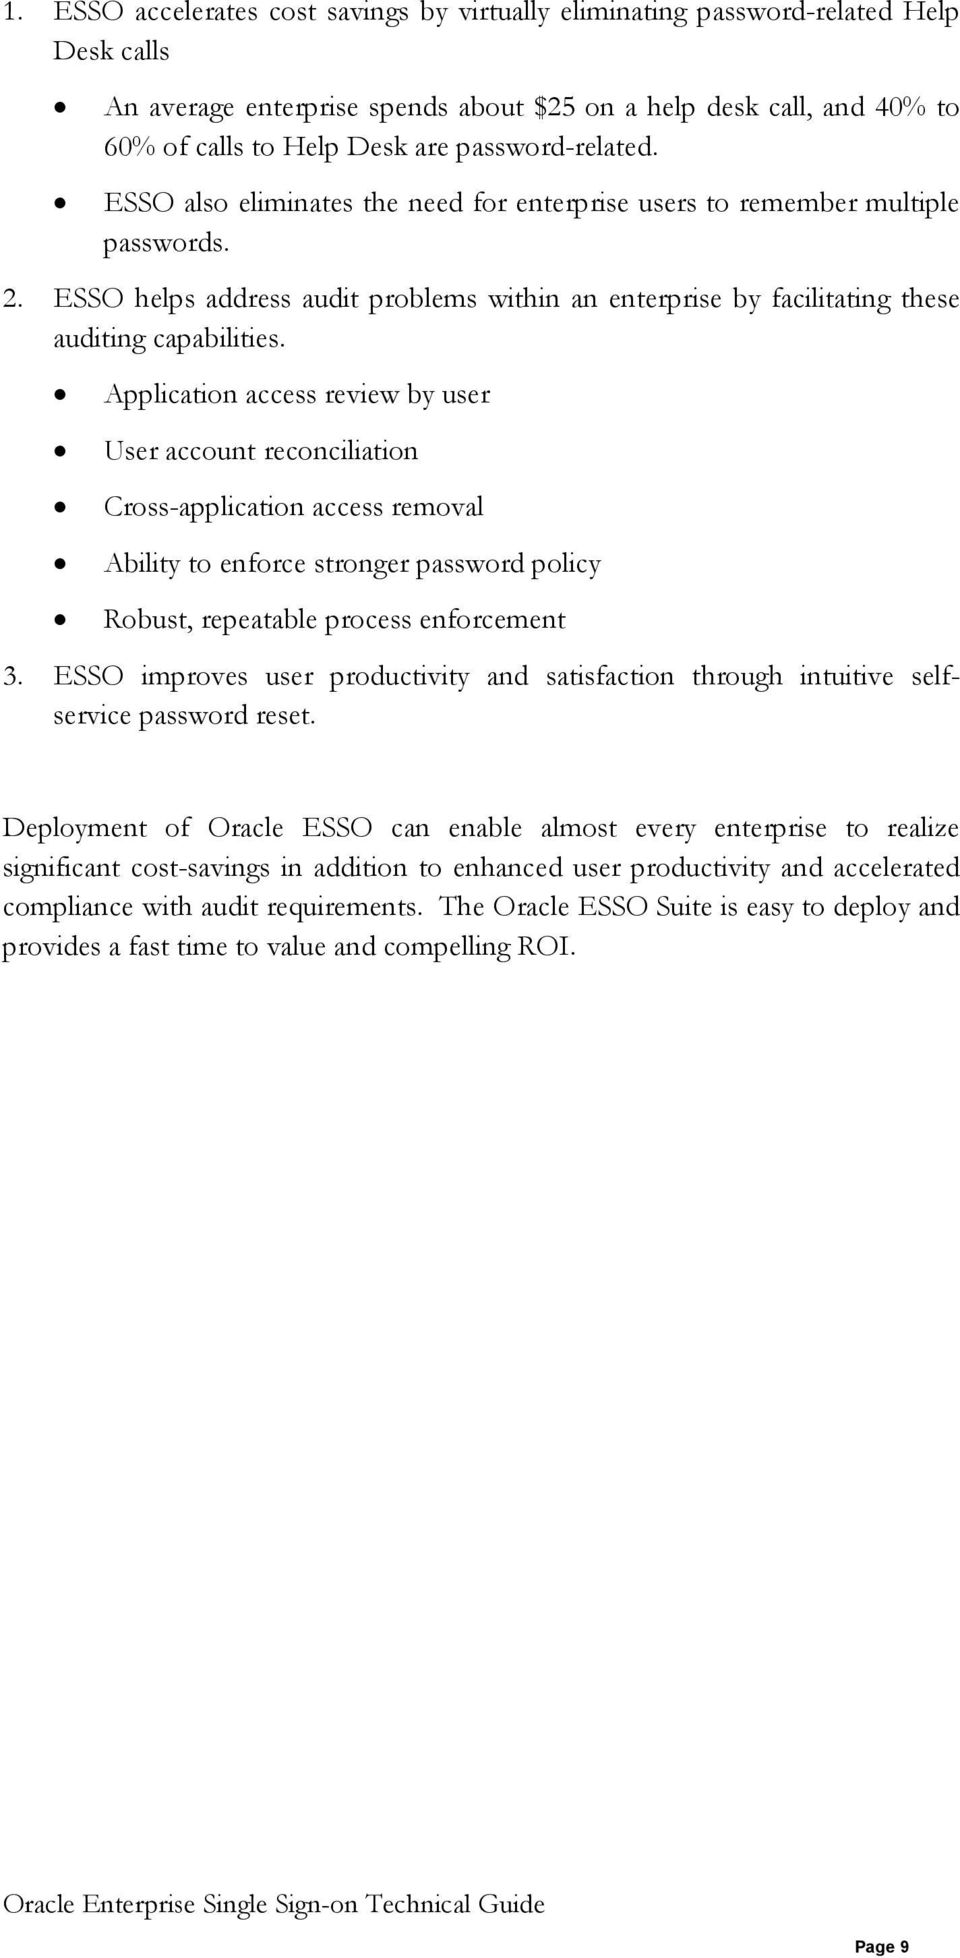 ESSO helps address audit problems within an enterprise by facilitating these auditing capabilities.